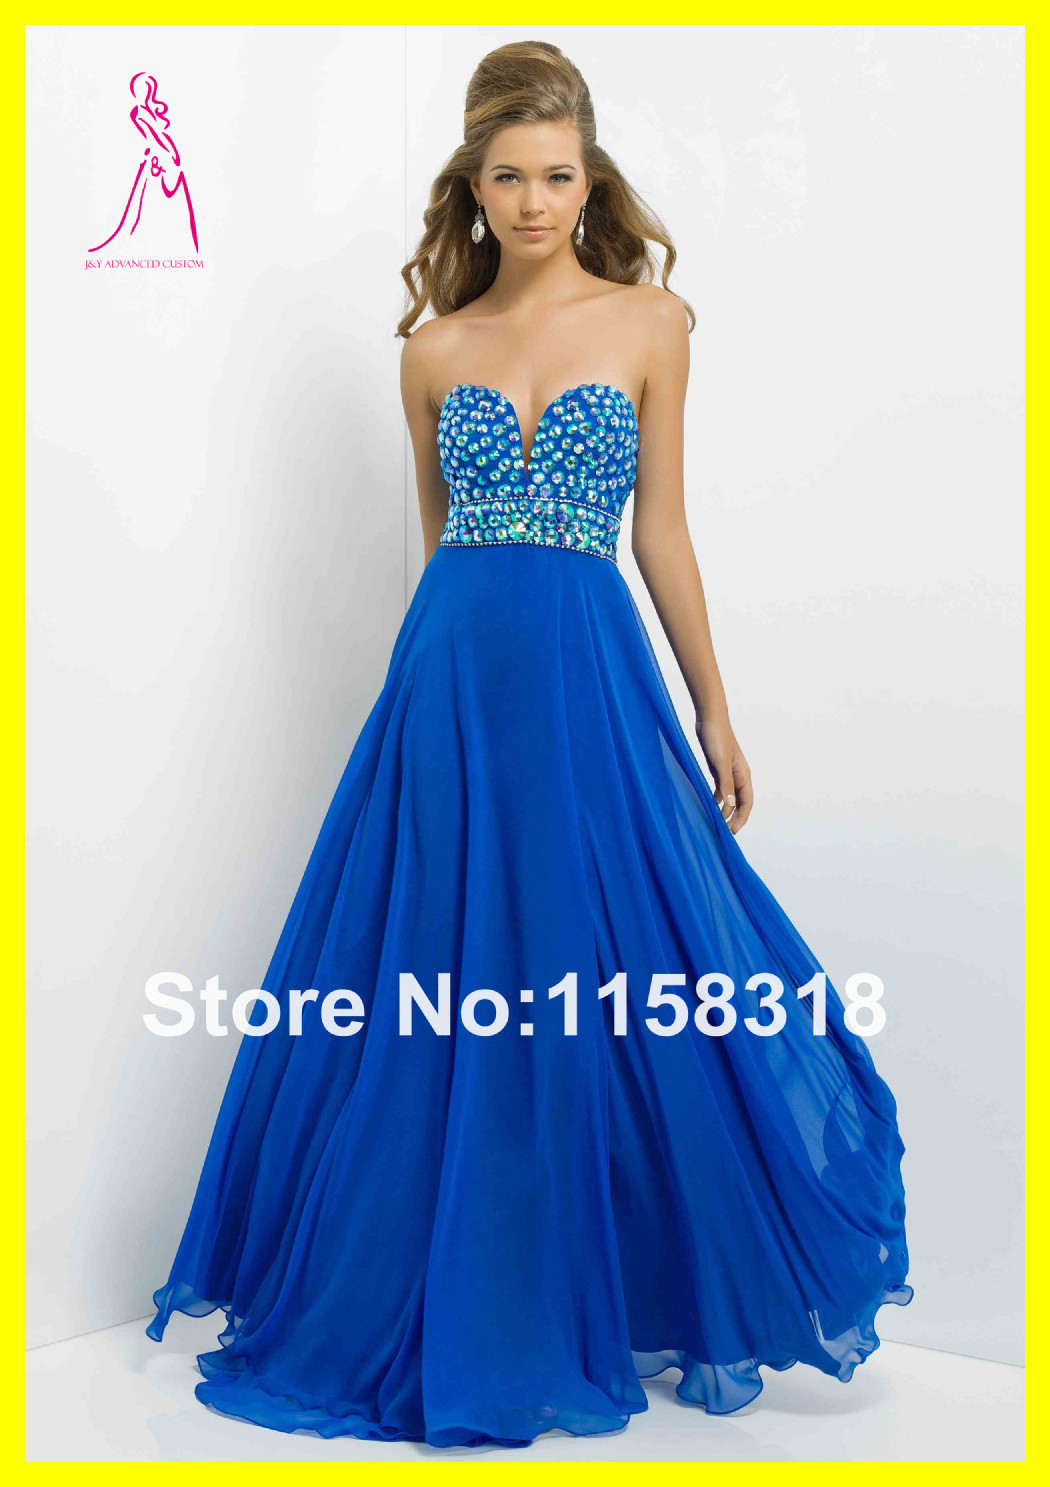 Cheap Prom Dresses In Michigan